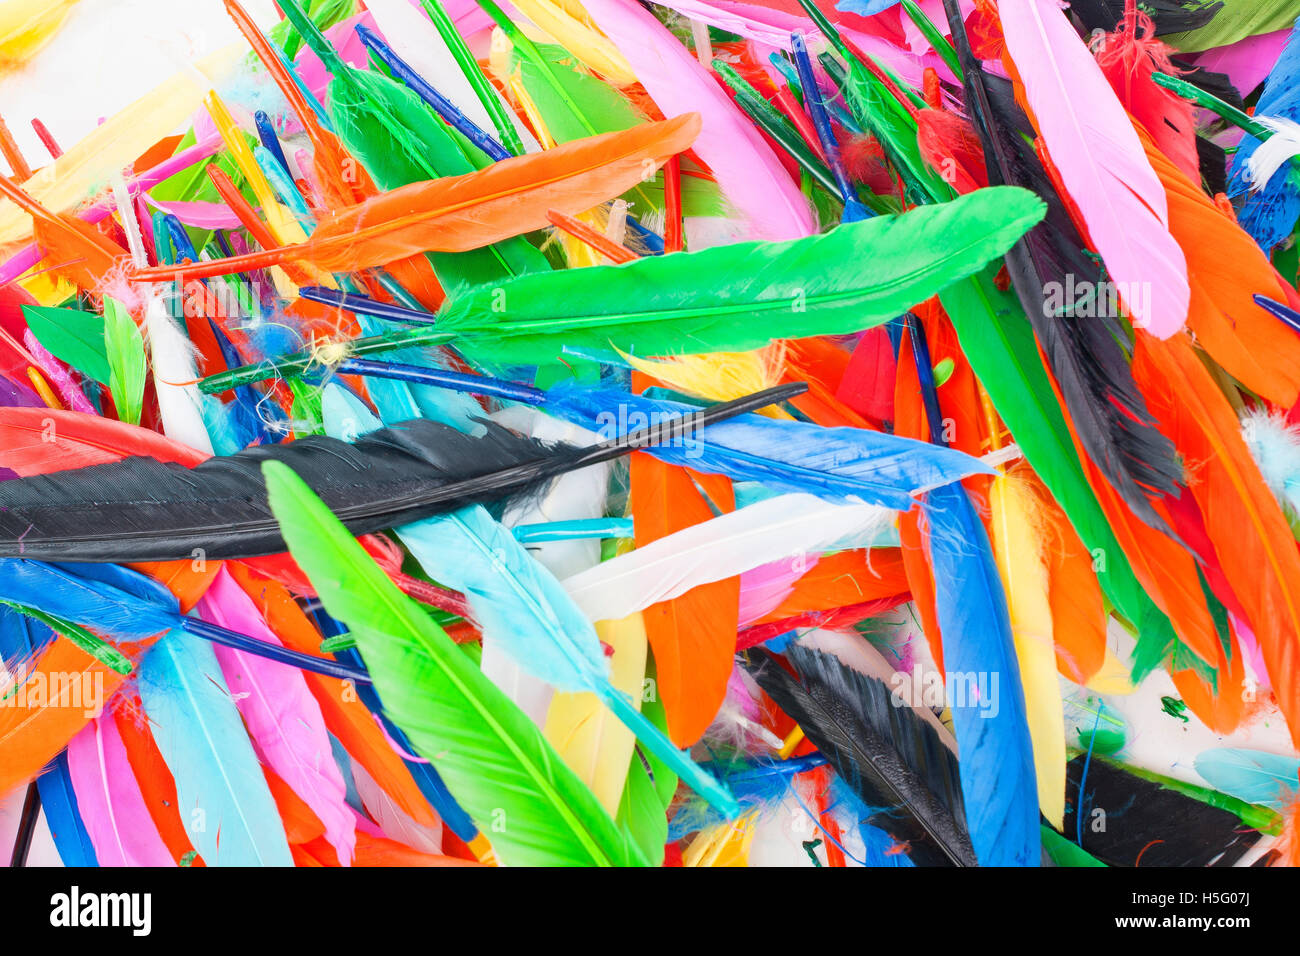 Creative Hobby Tools Real Colored Bird Feathers For Dresses Decorations Or Any Other Use Texture Background From Rainbow Colors